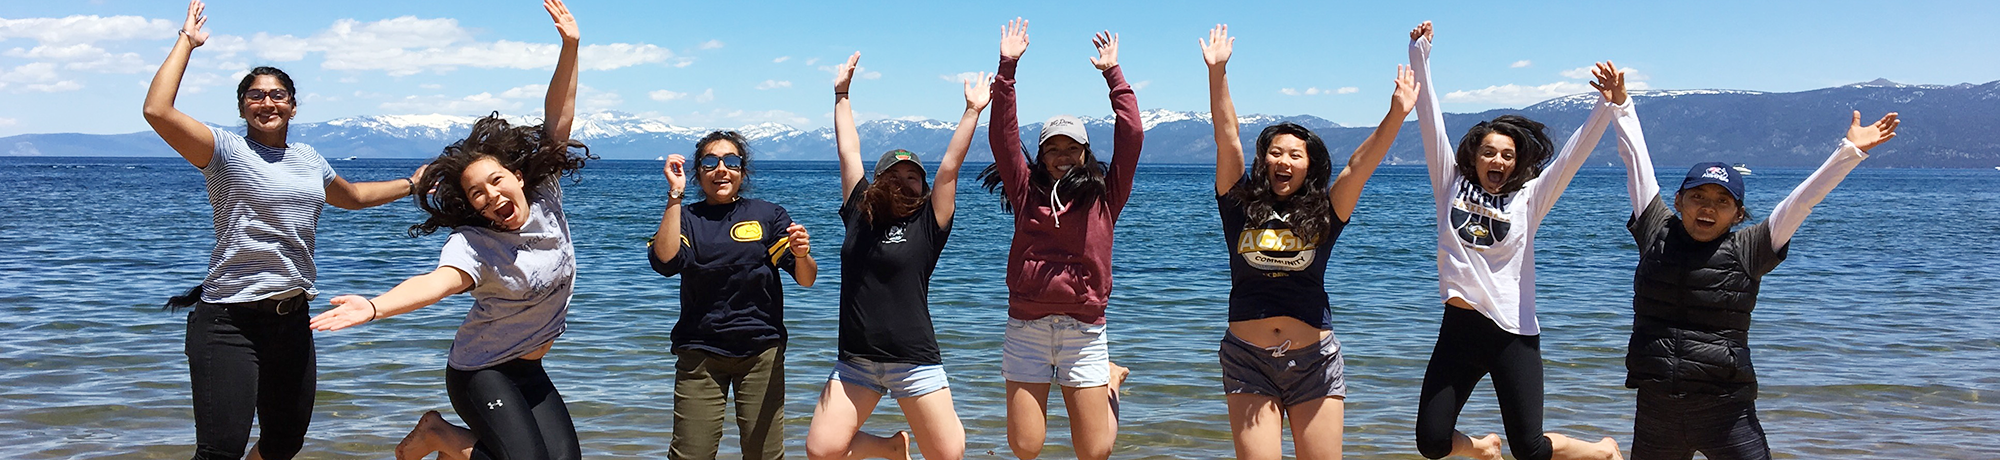 BioLaunch students visit Lake Tahoe during a water quality sampling field tri